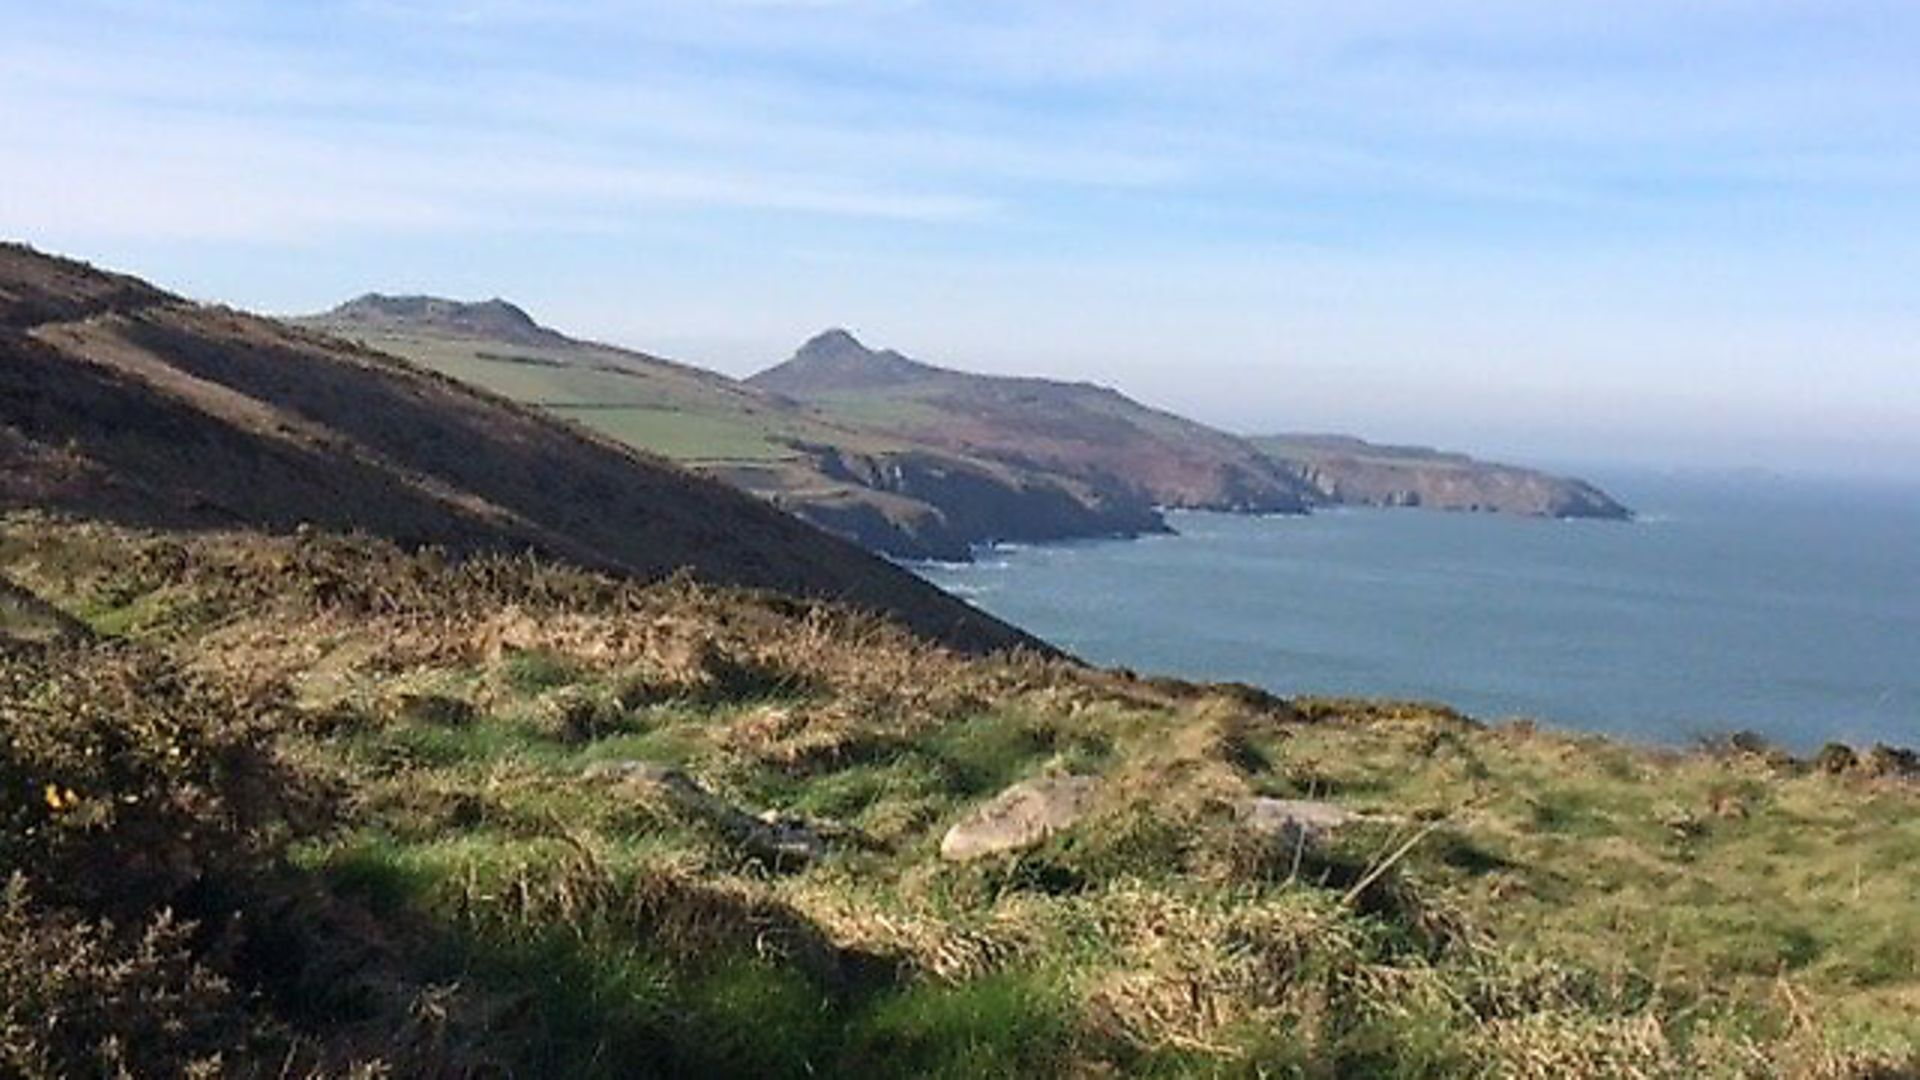 A view along the coast path in Pembrokeshire, west Wales. - Credit: PA Wire/PA Images